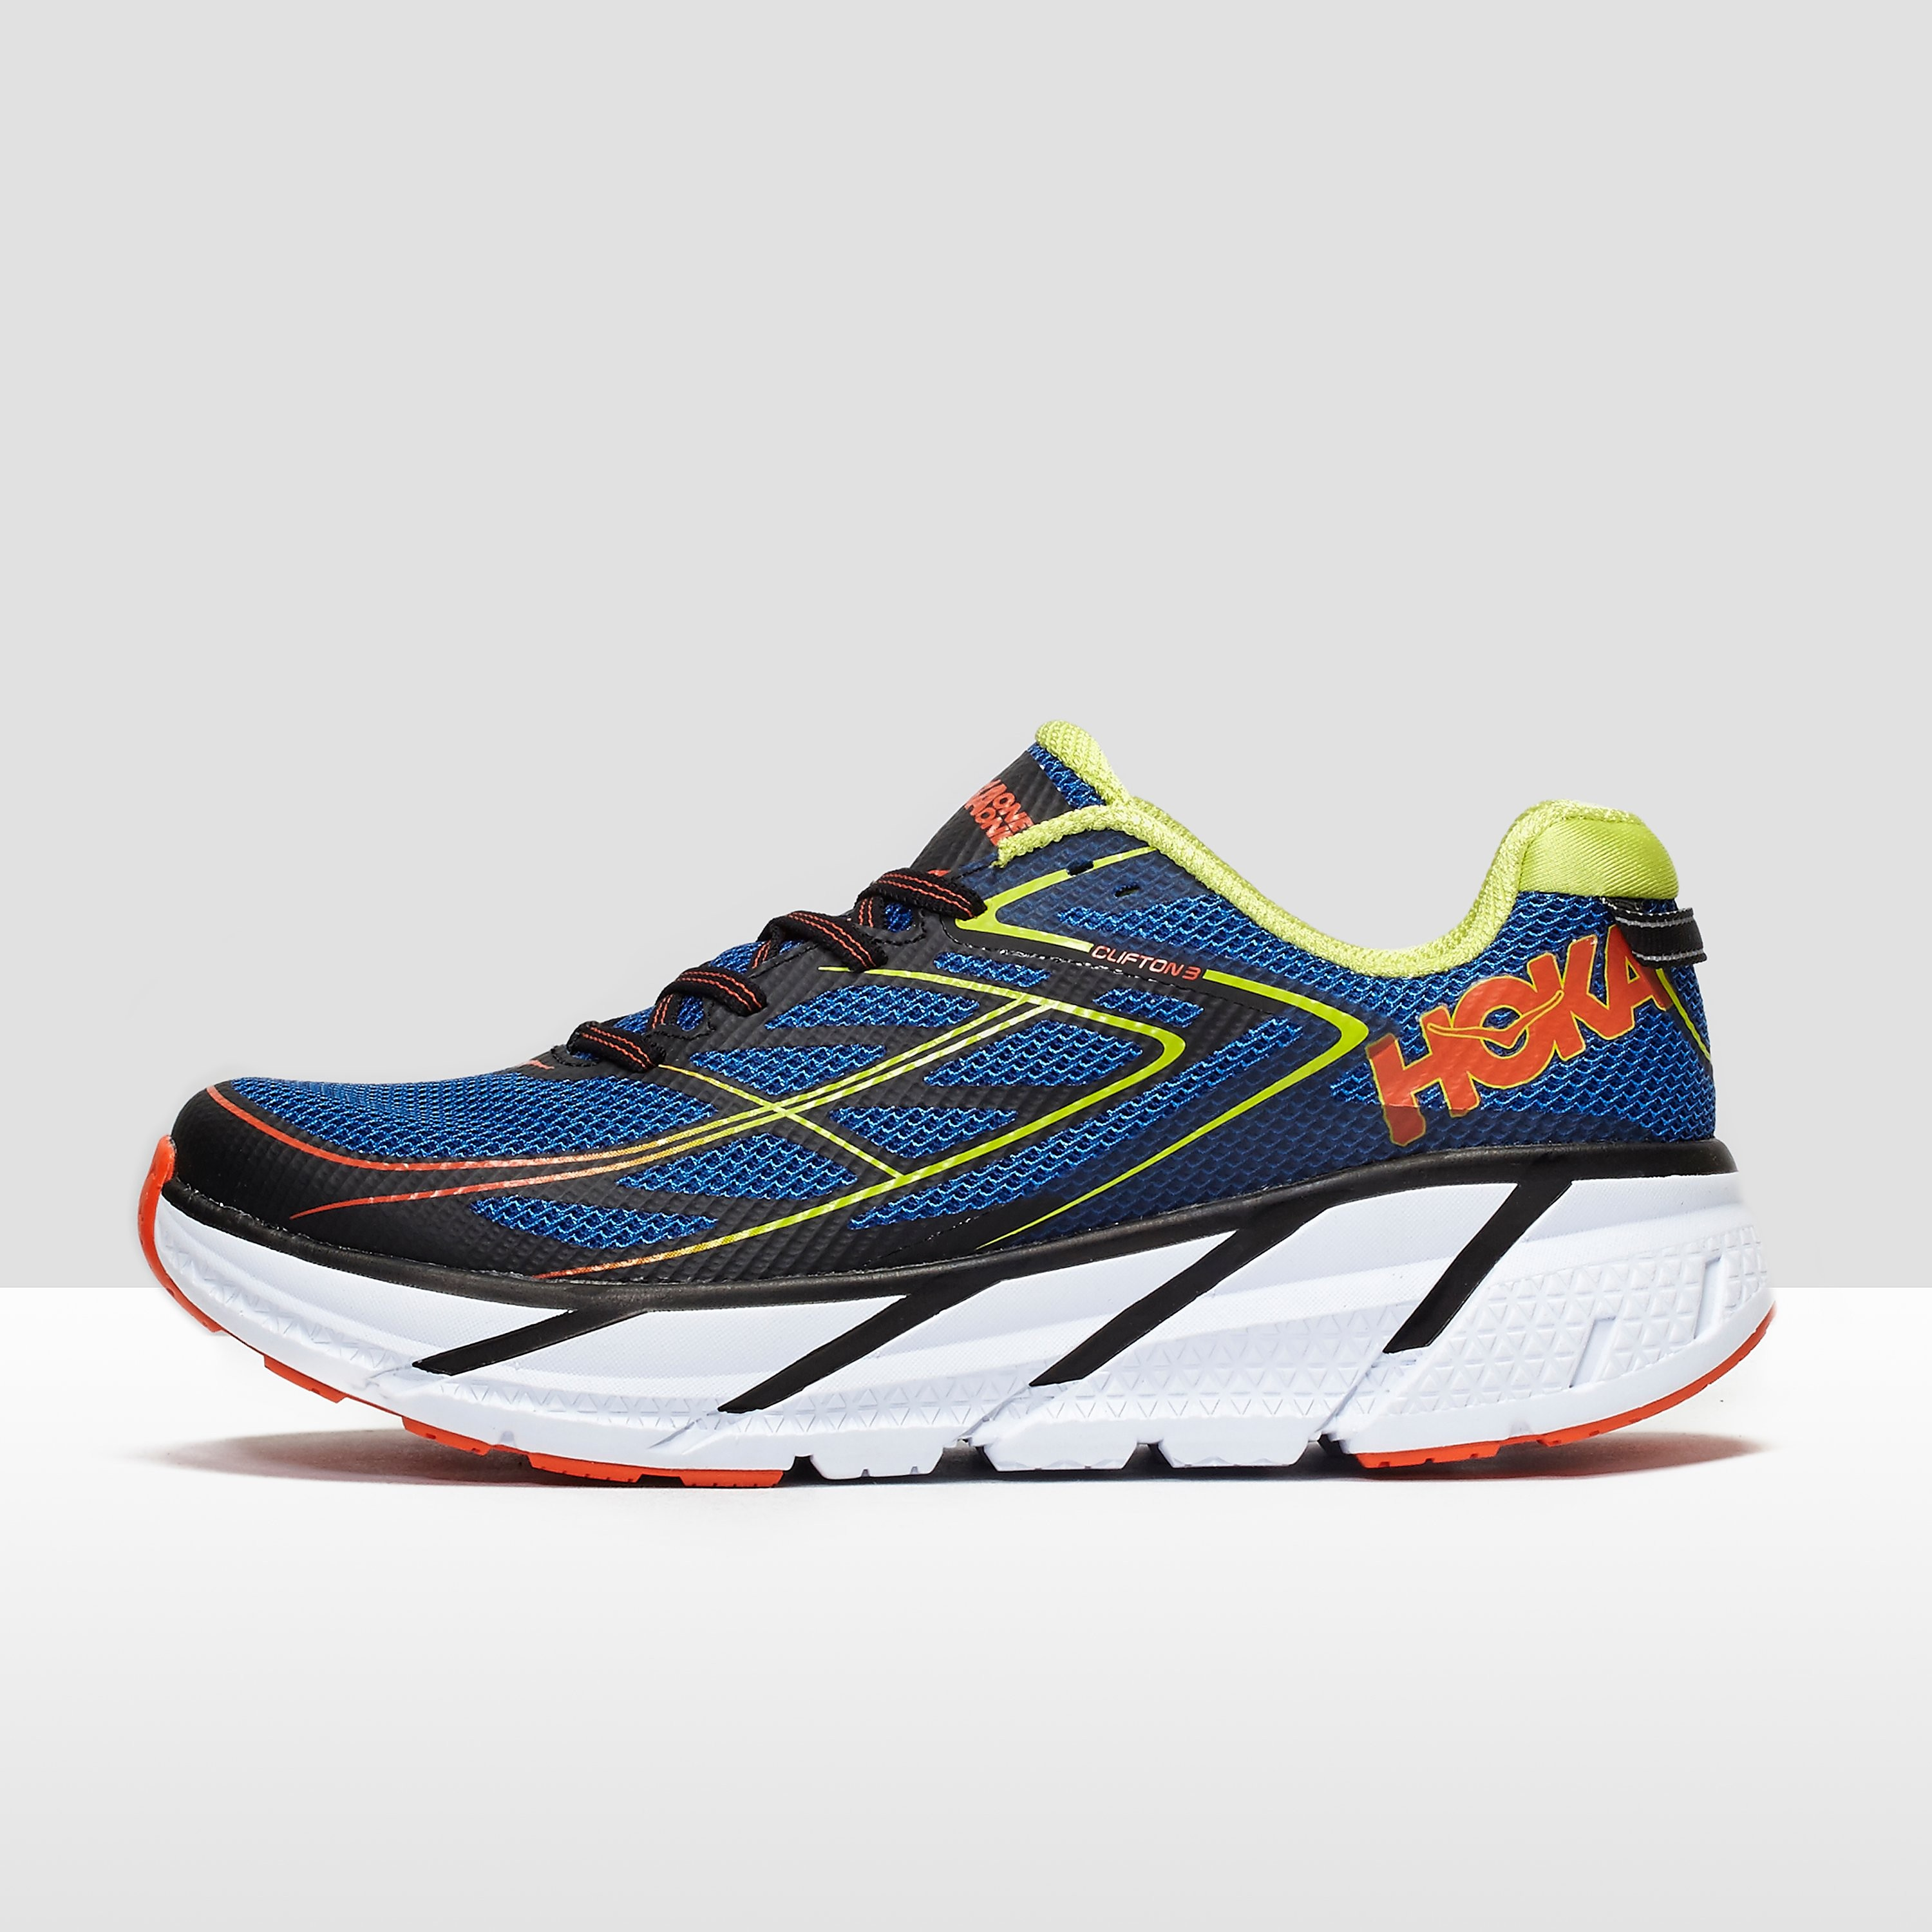 Hoka one one Clifton 3 Men's running Shoe